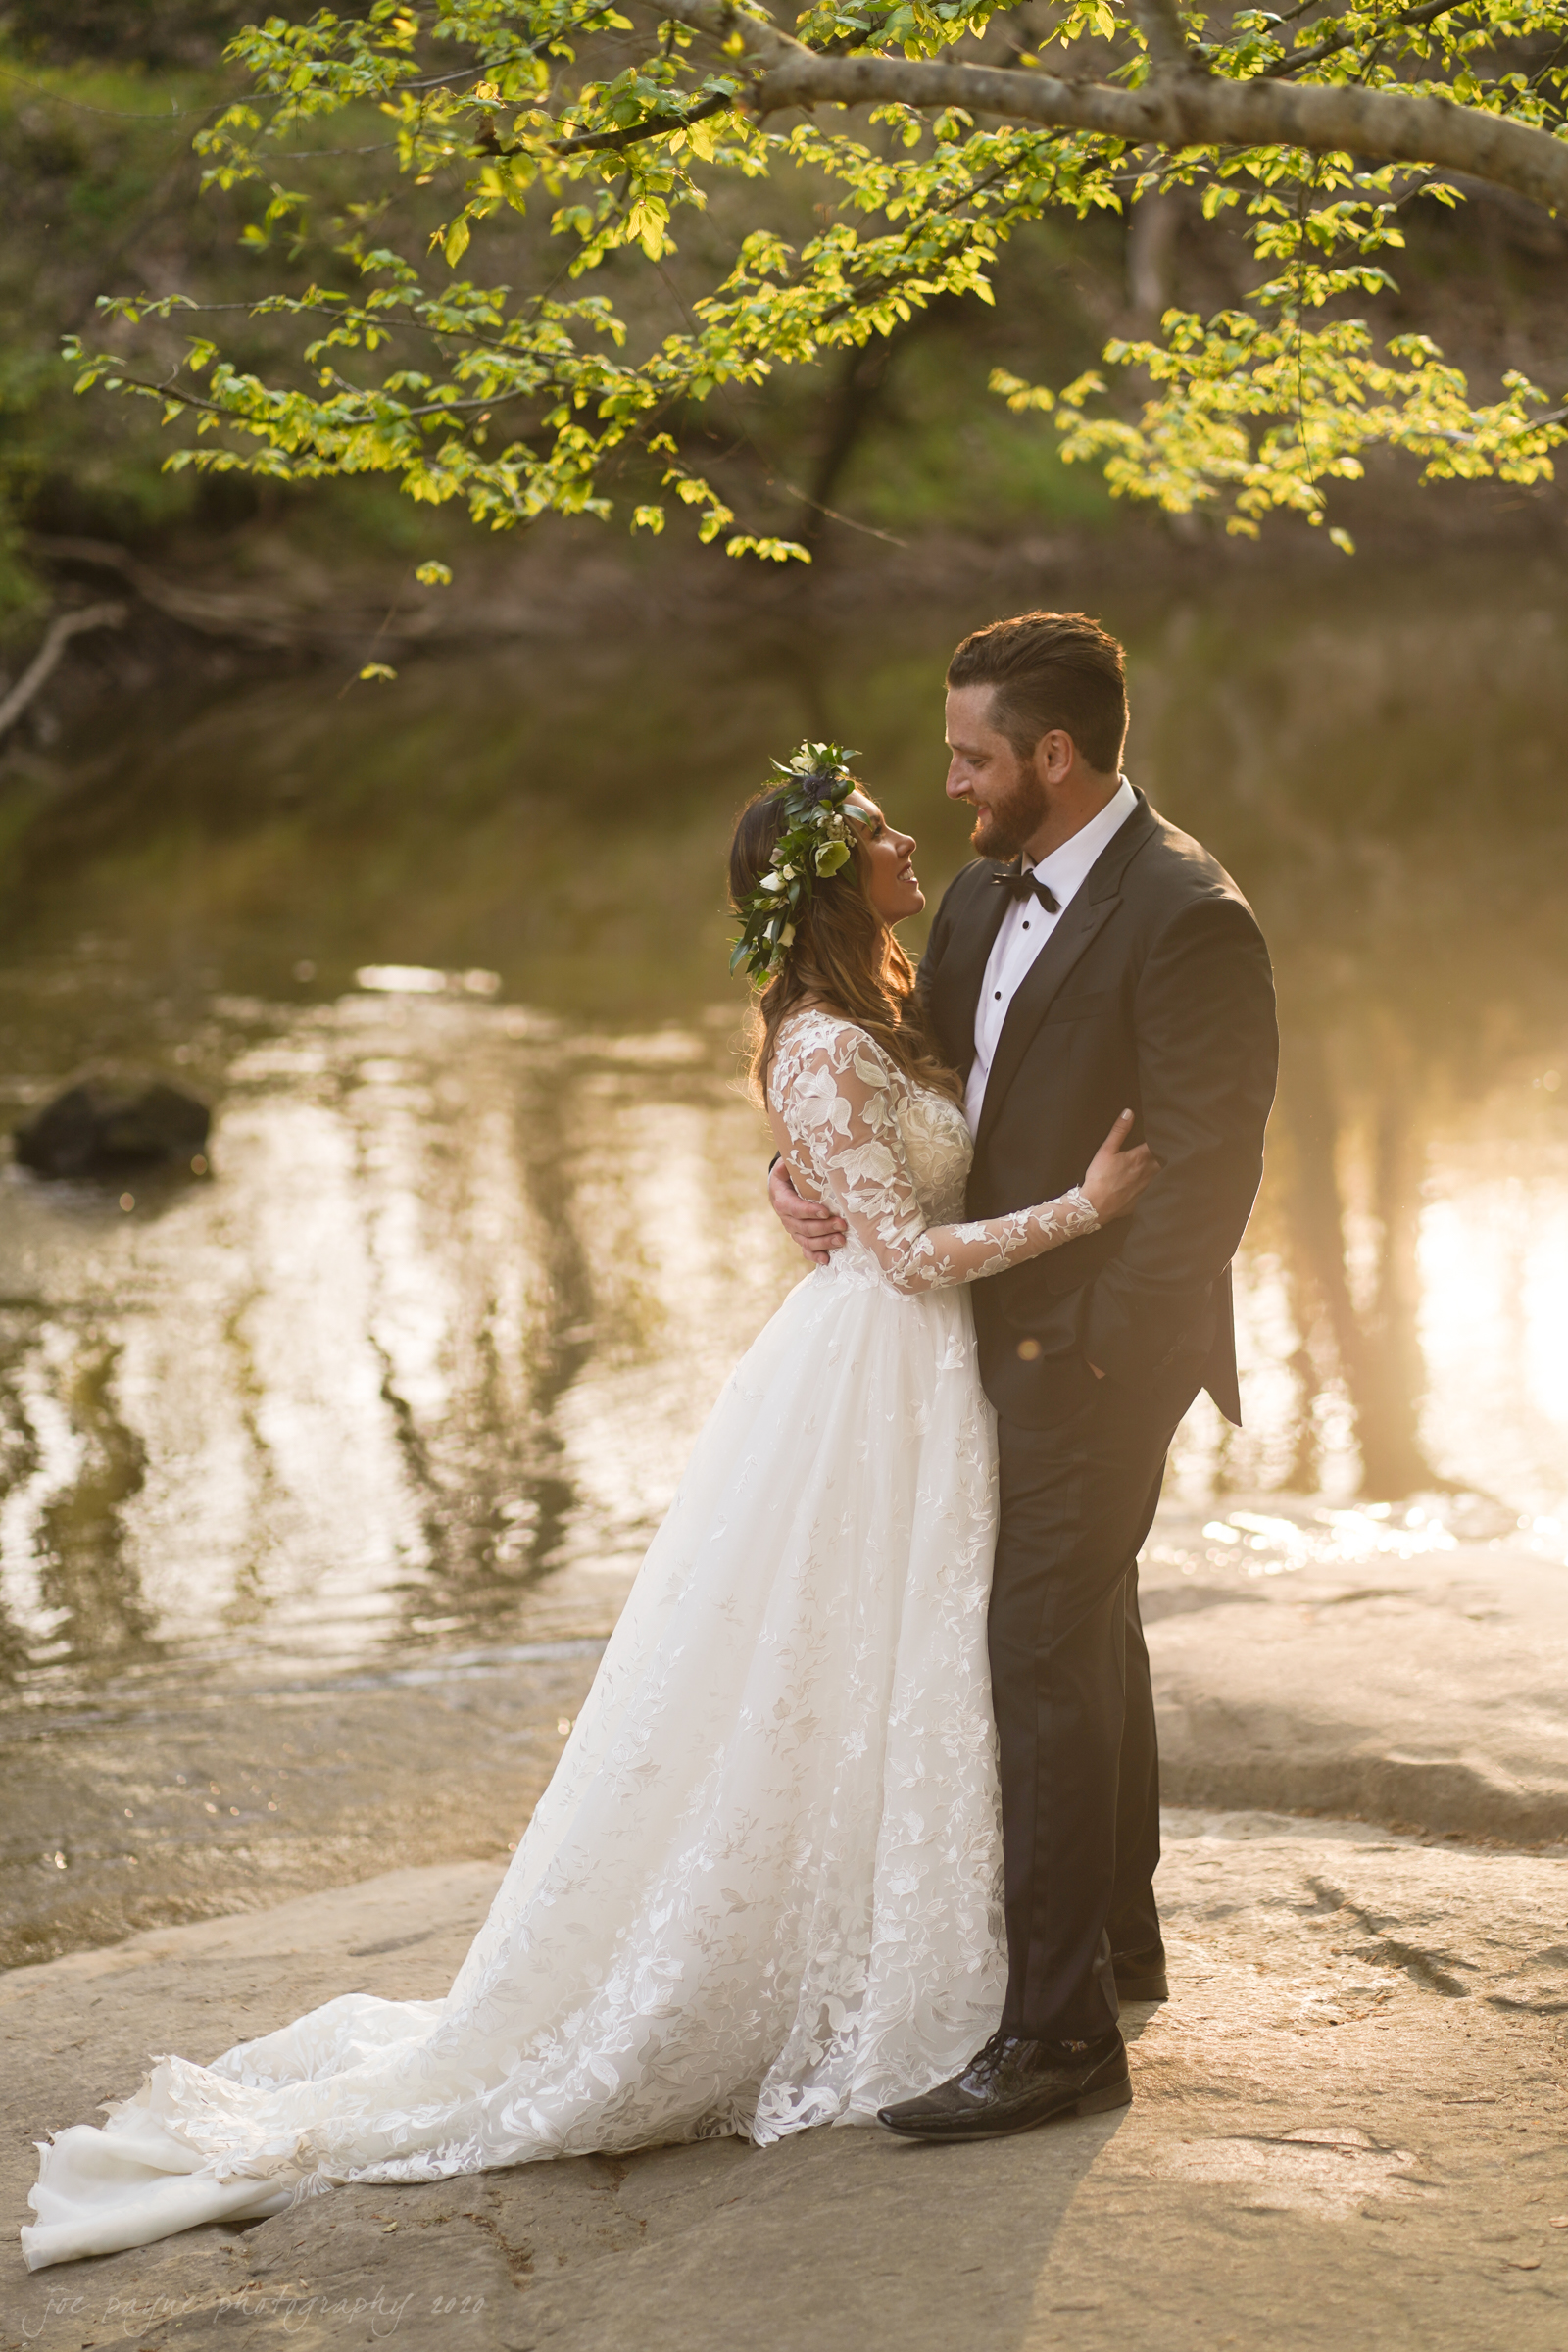 umstead hotel park wedding photography brittany harrison 36